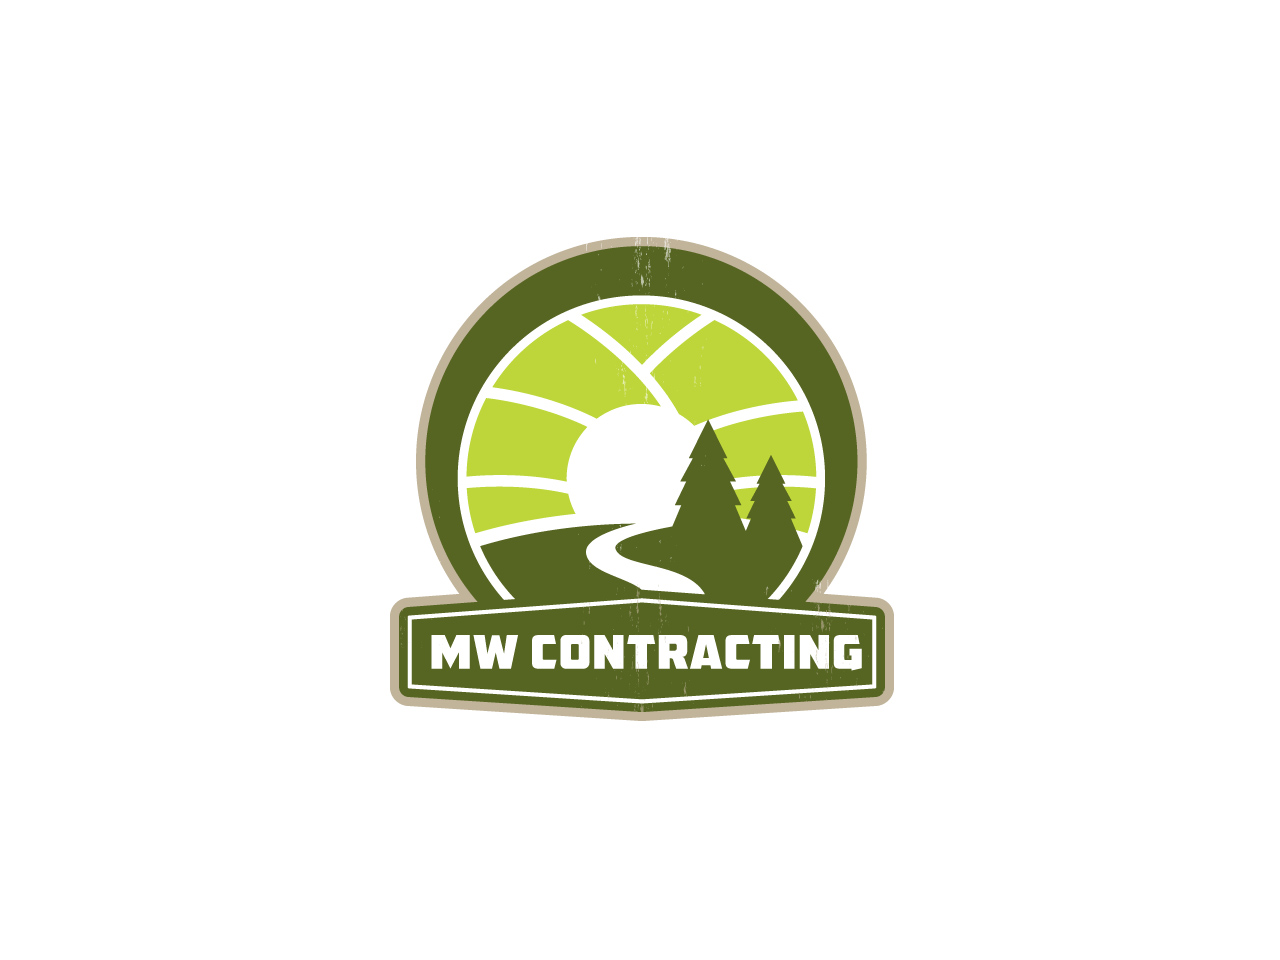 Logo Design by jpbituin - Entry No. 48 in the Logo Design Contest Unique Logo Design Wanted for MW Contracting.